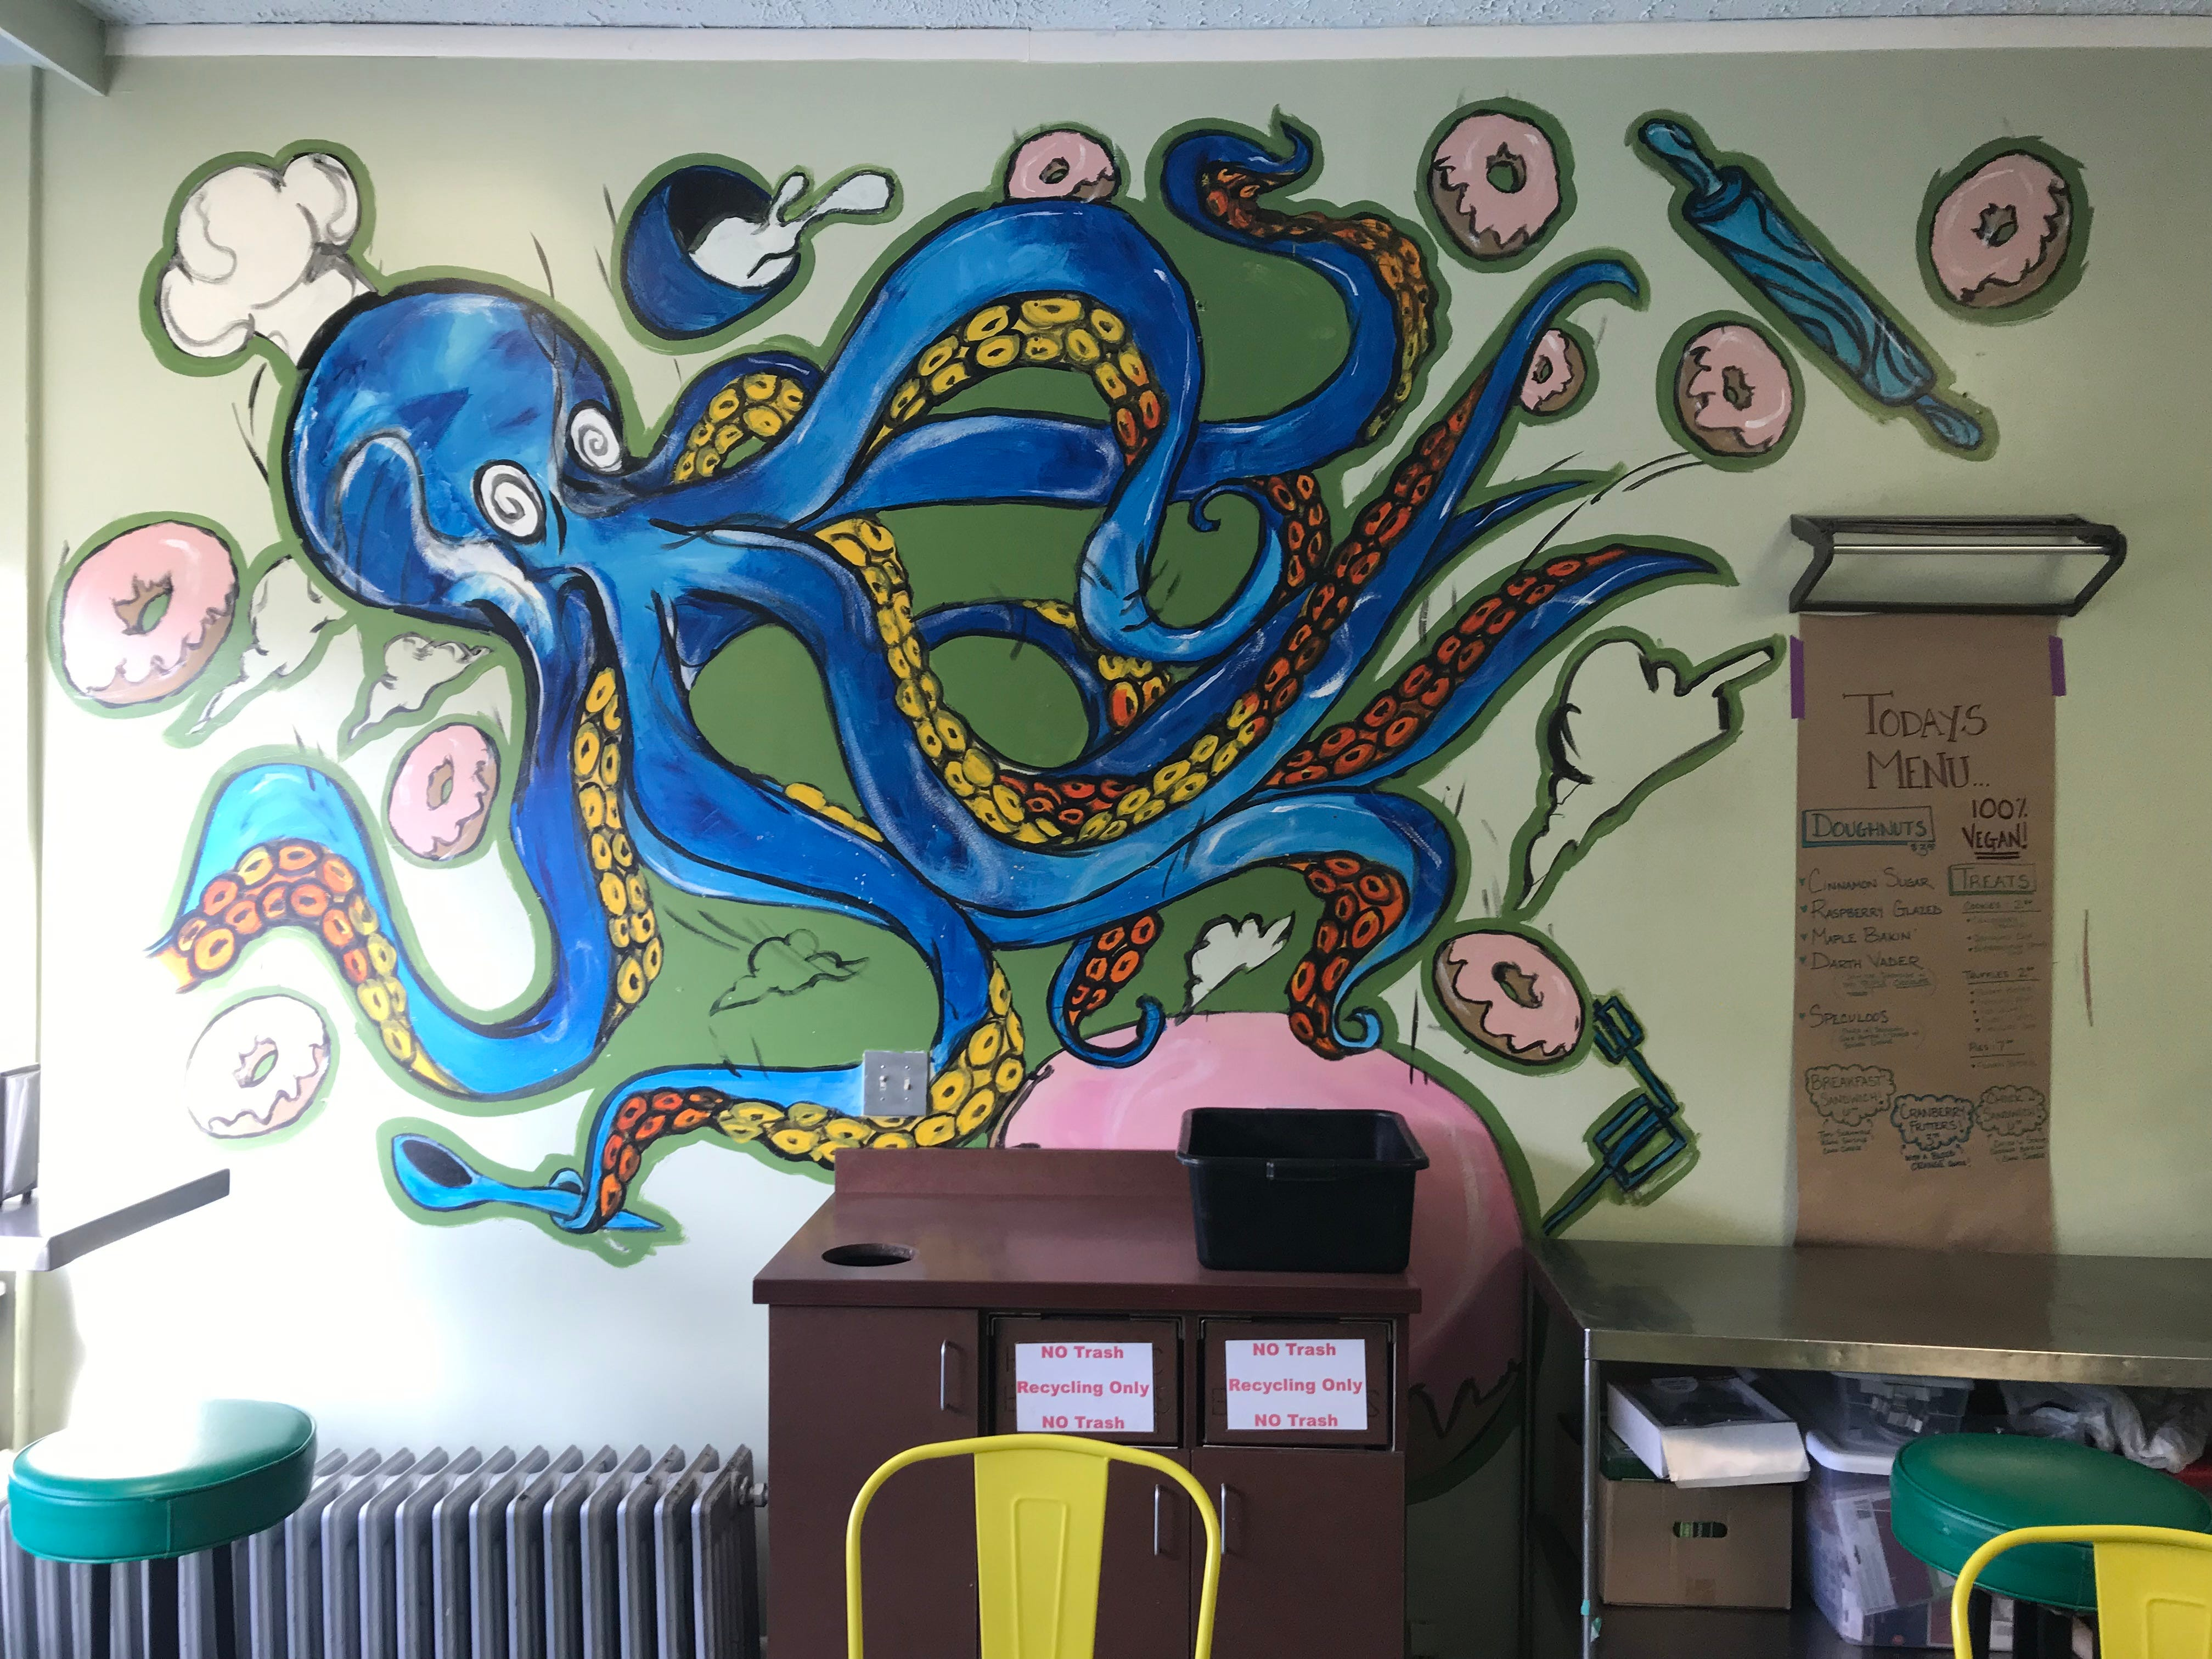 A colorful mural on the wall at Misfit Doughnuts.